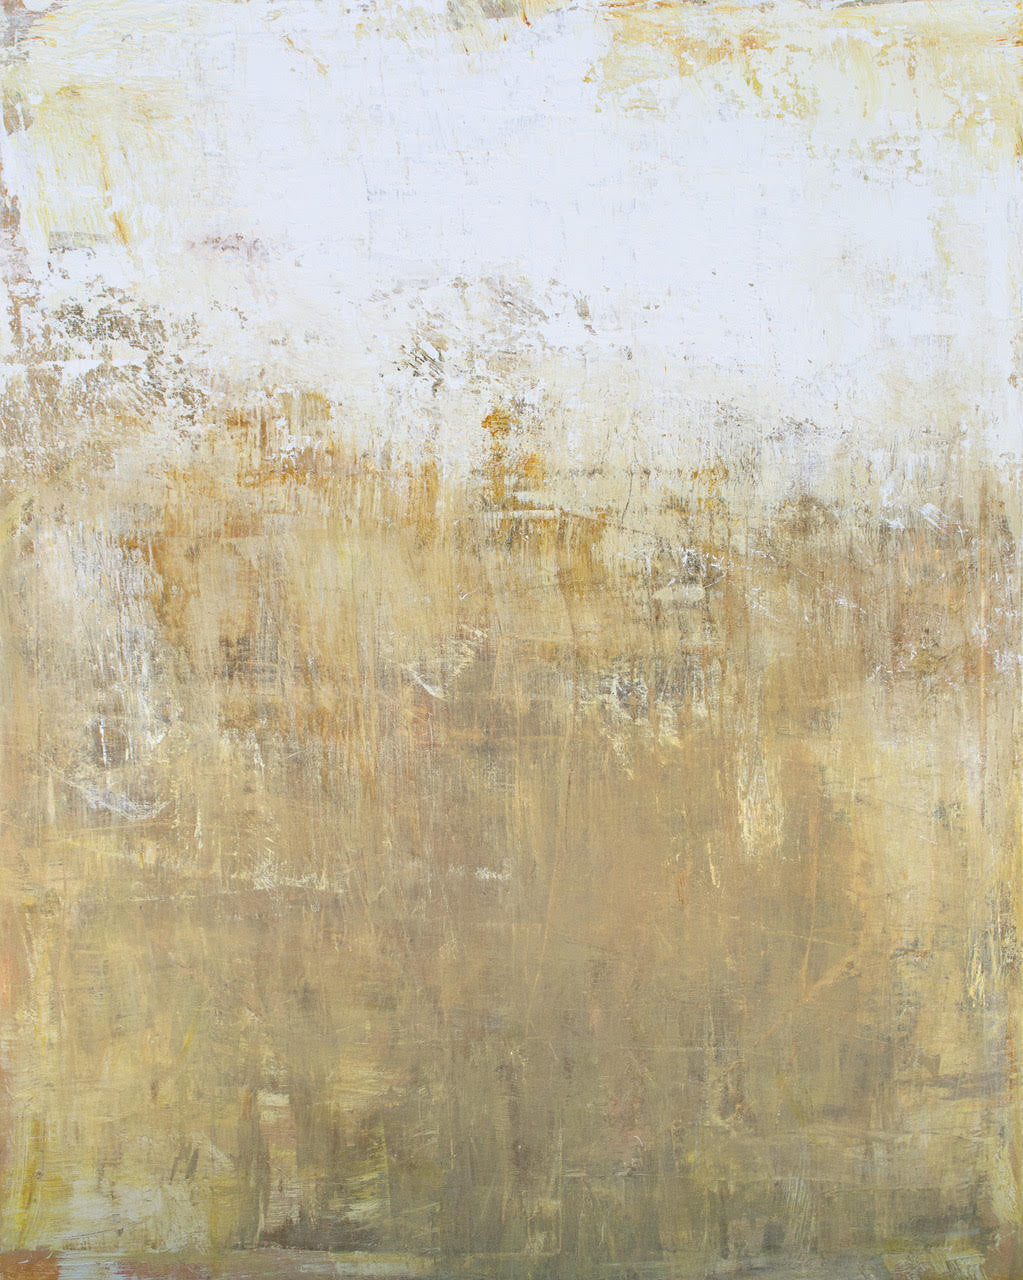 Earth and Sun - SOLD | ART Elements Gallery